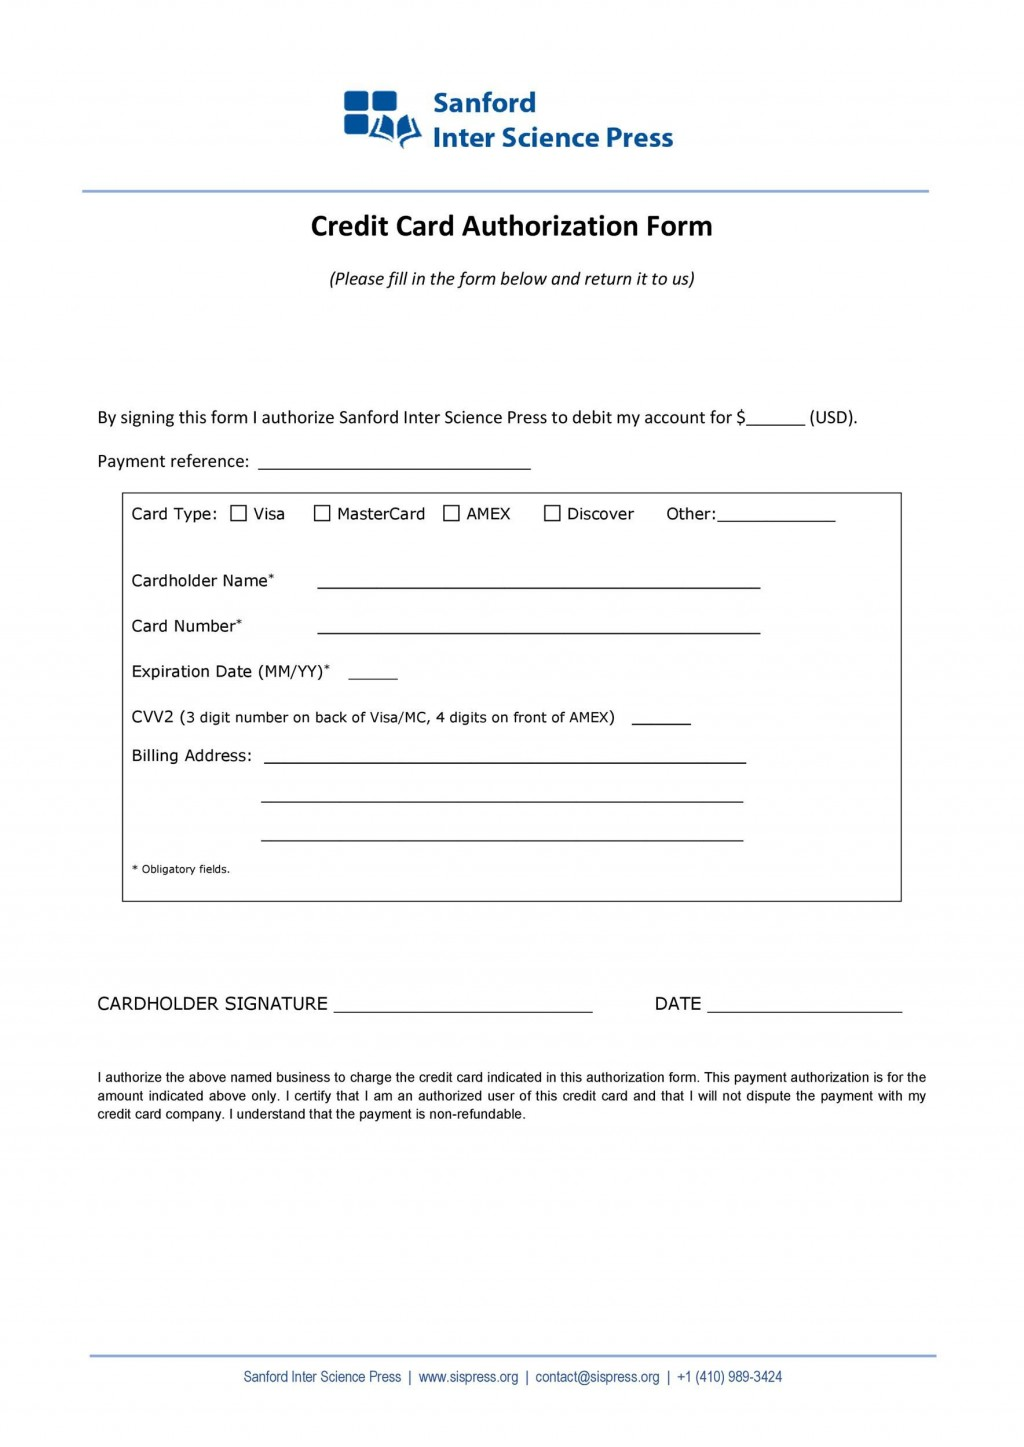 006 Impressive Credit Card Payment Form Template Html Concept Large